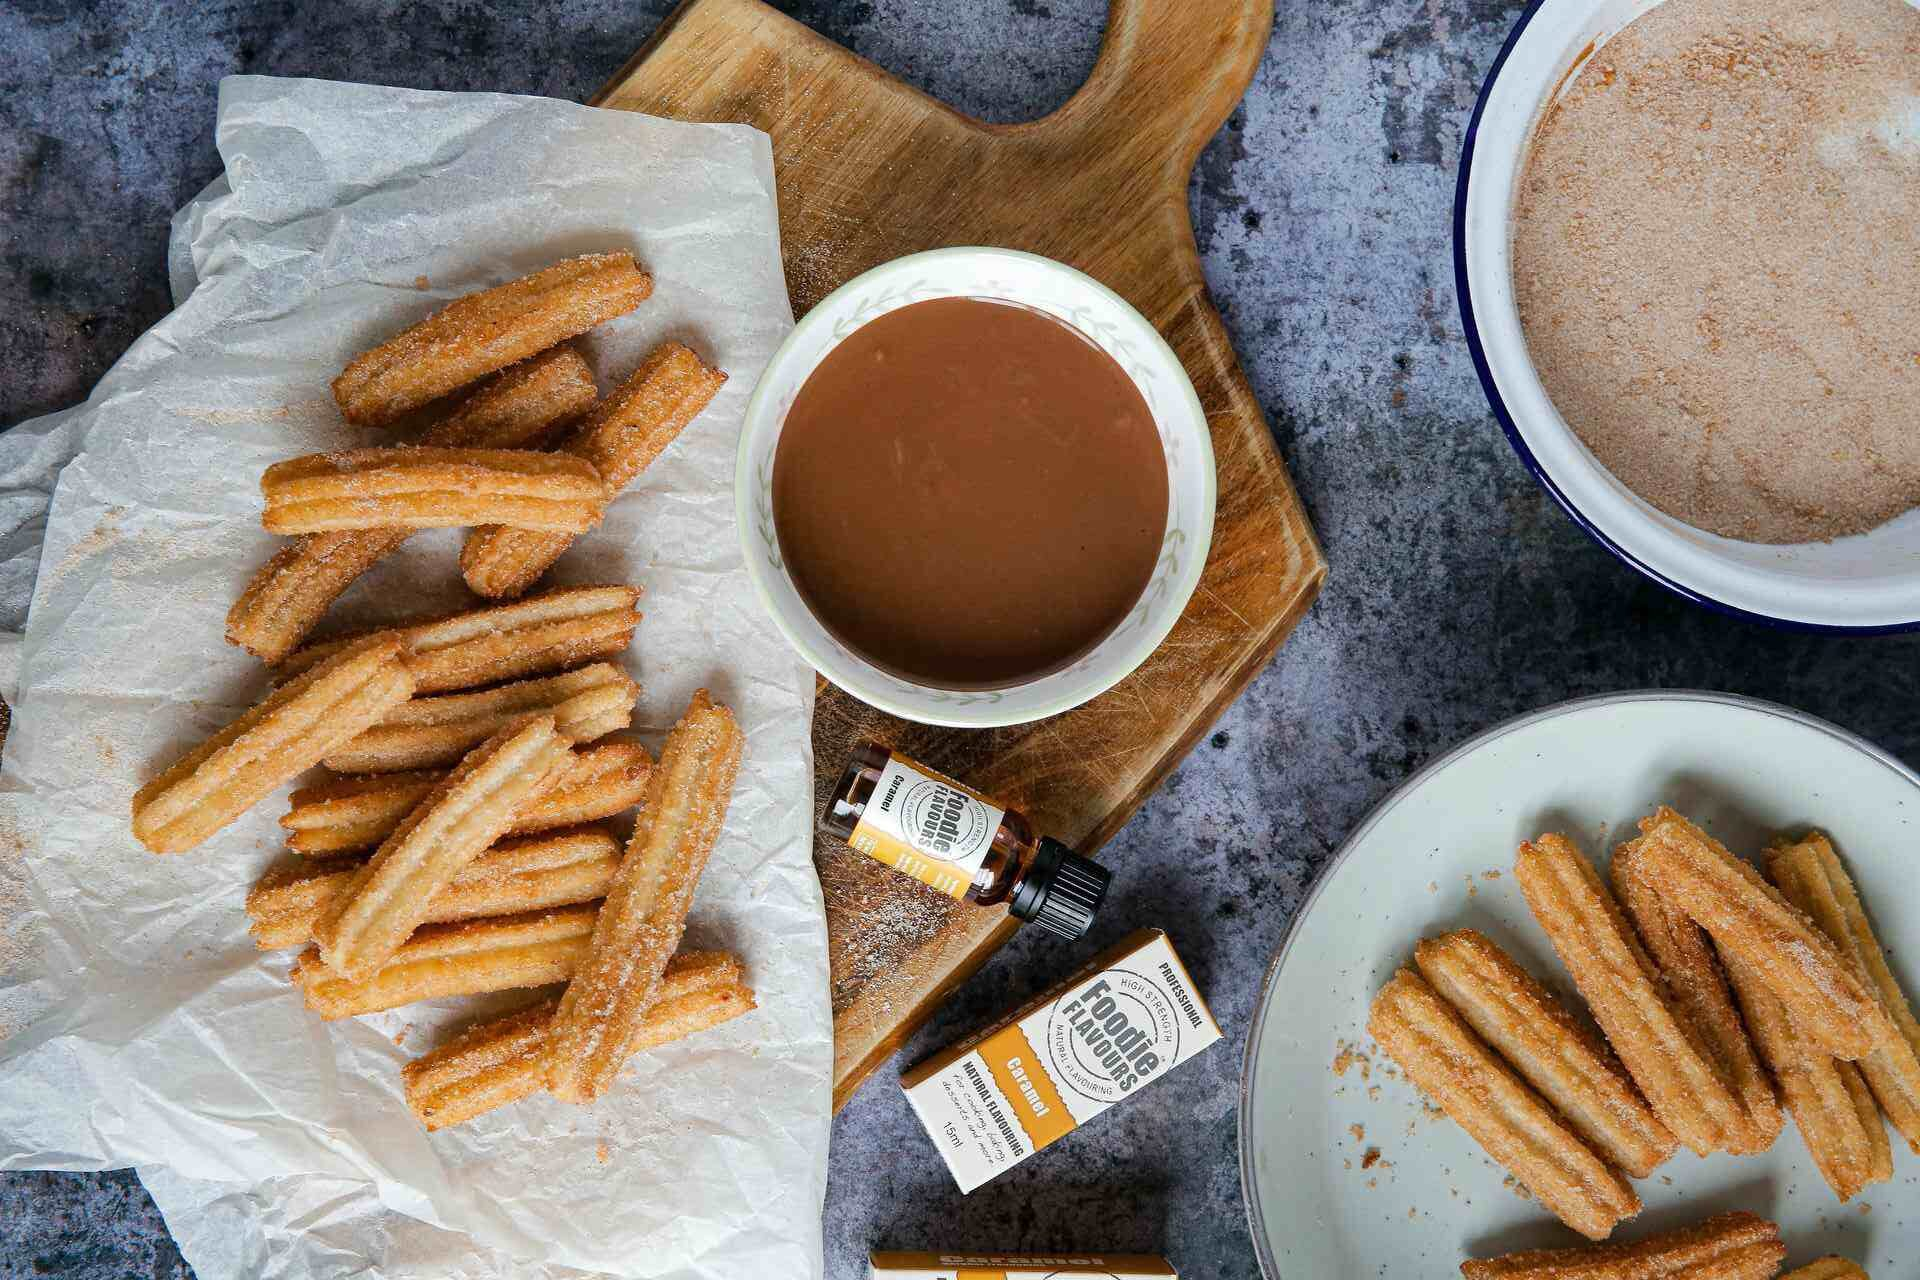 A platter of churros and hot chocolates served with caramel